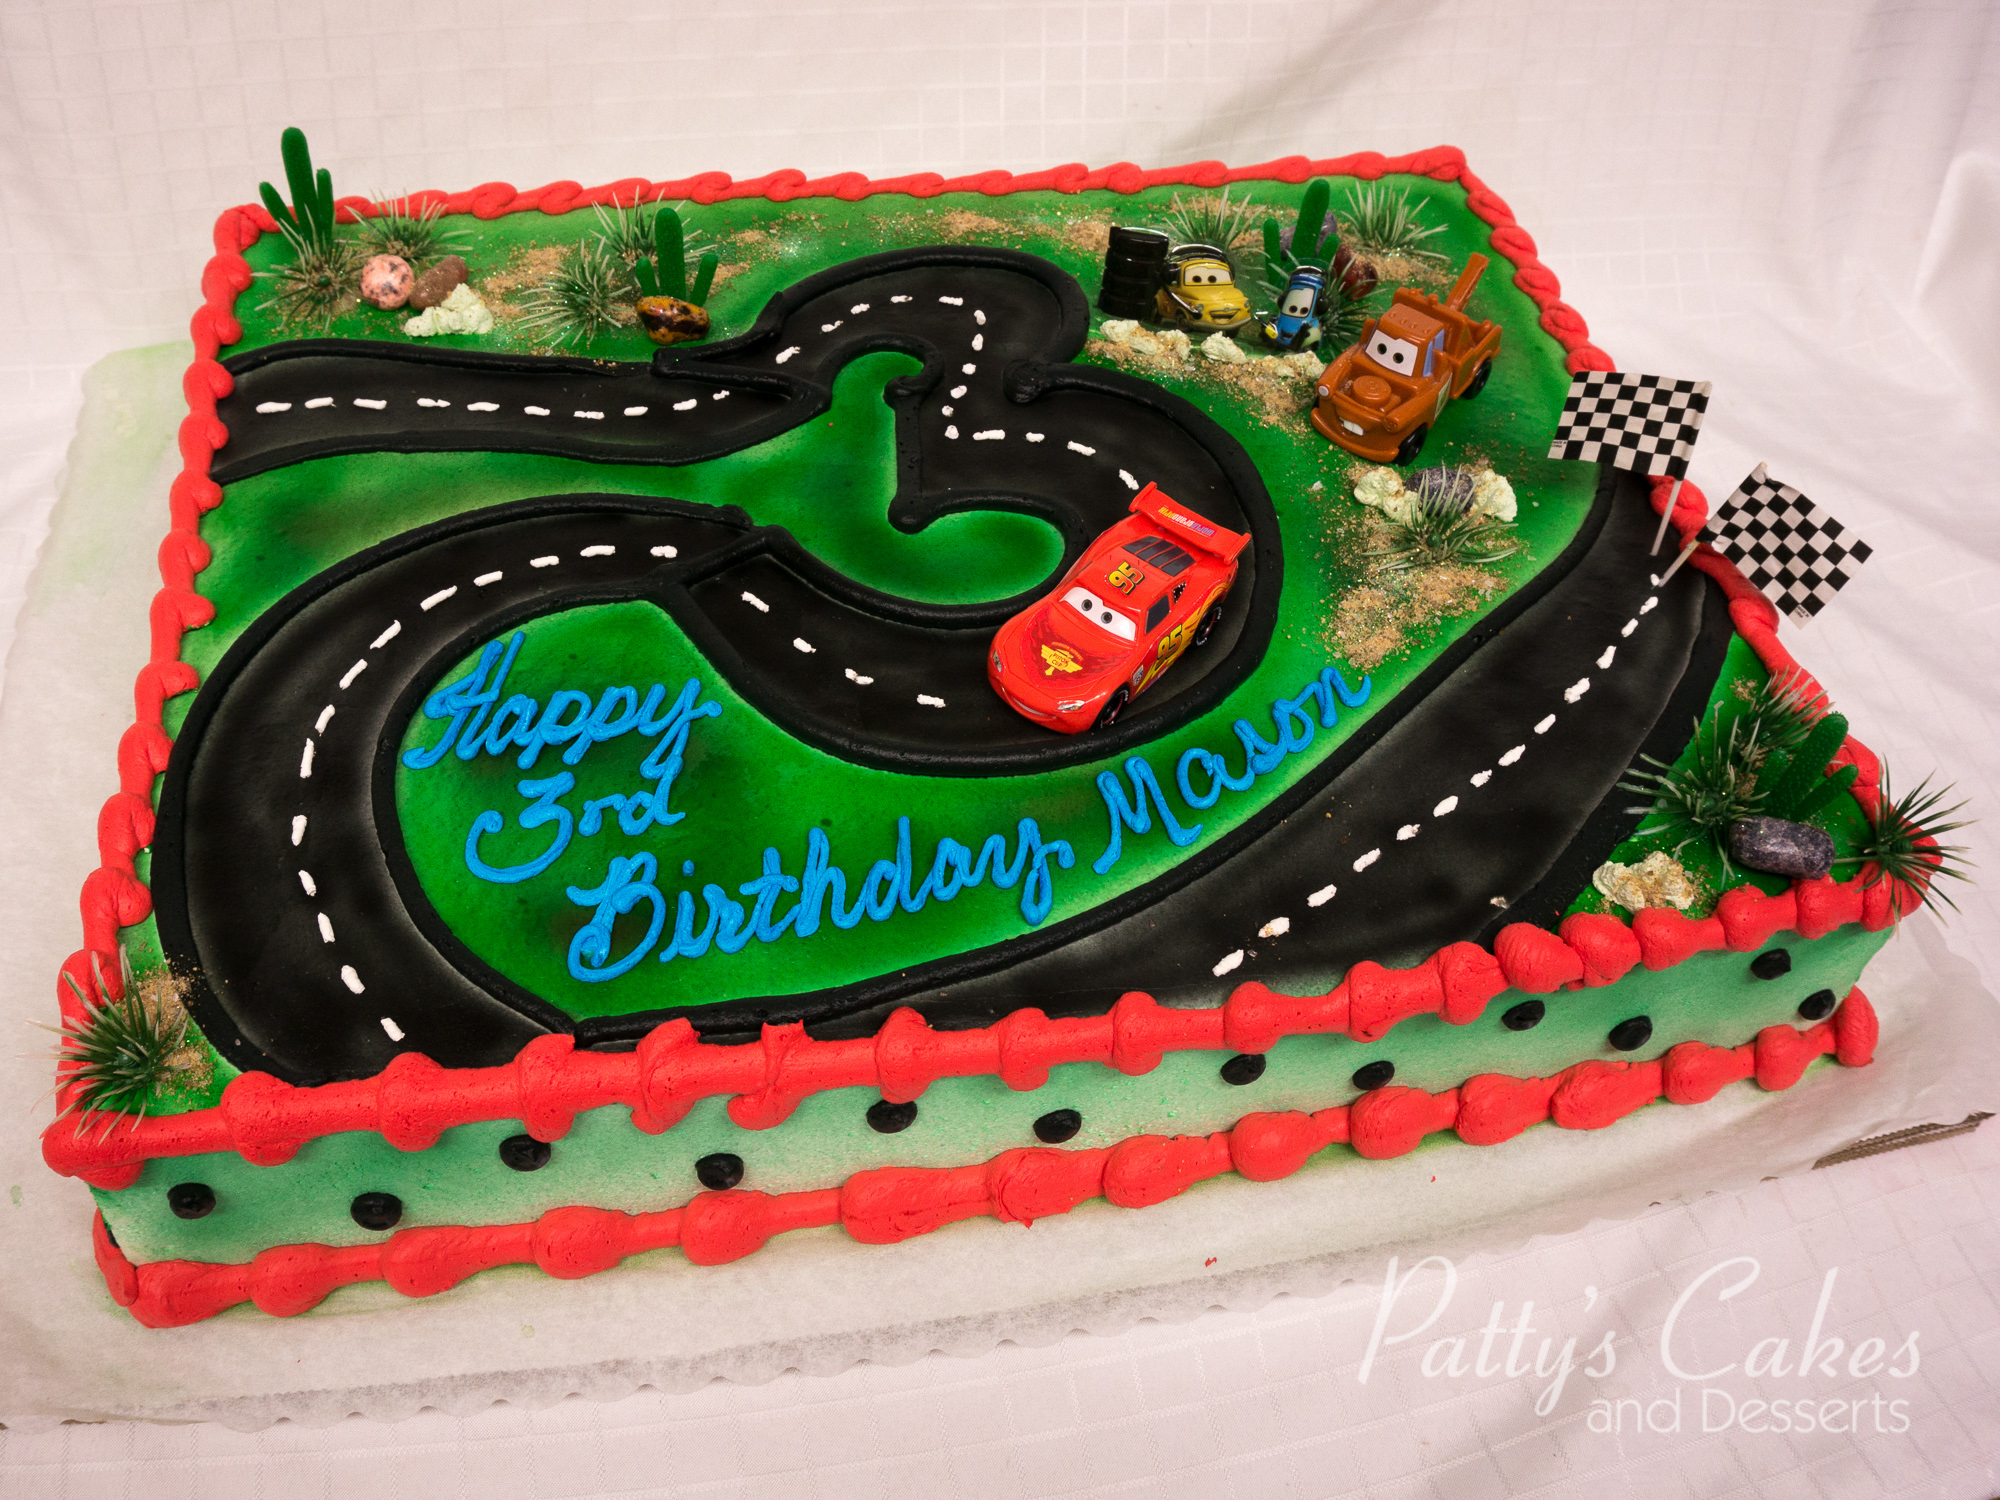 Disney Cars Birthday Cake Photo Of A Disney Cars Birthday Cake Pattys Cakes And Desserts